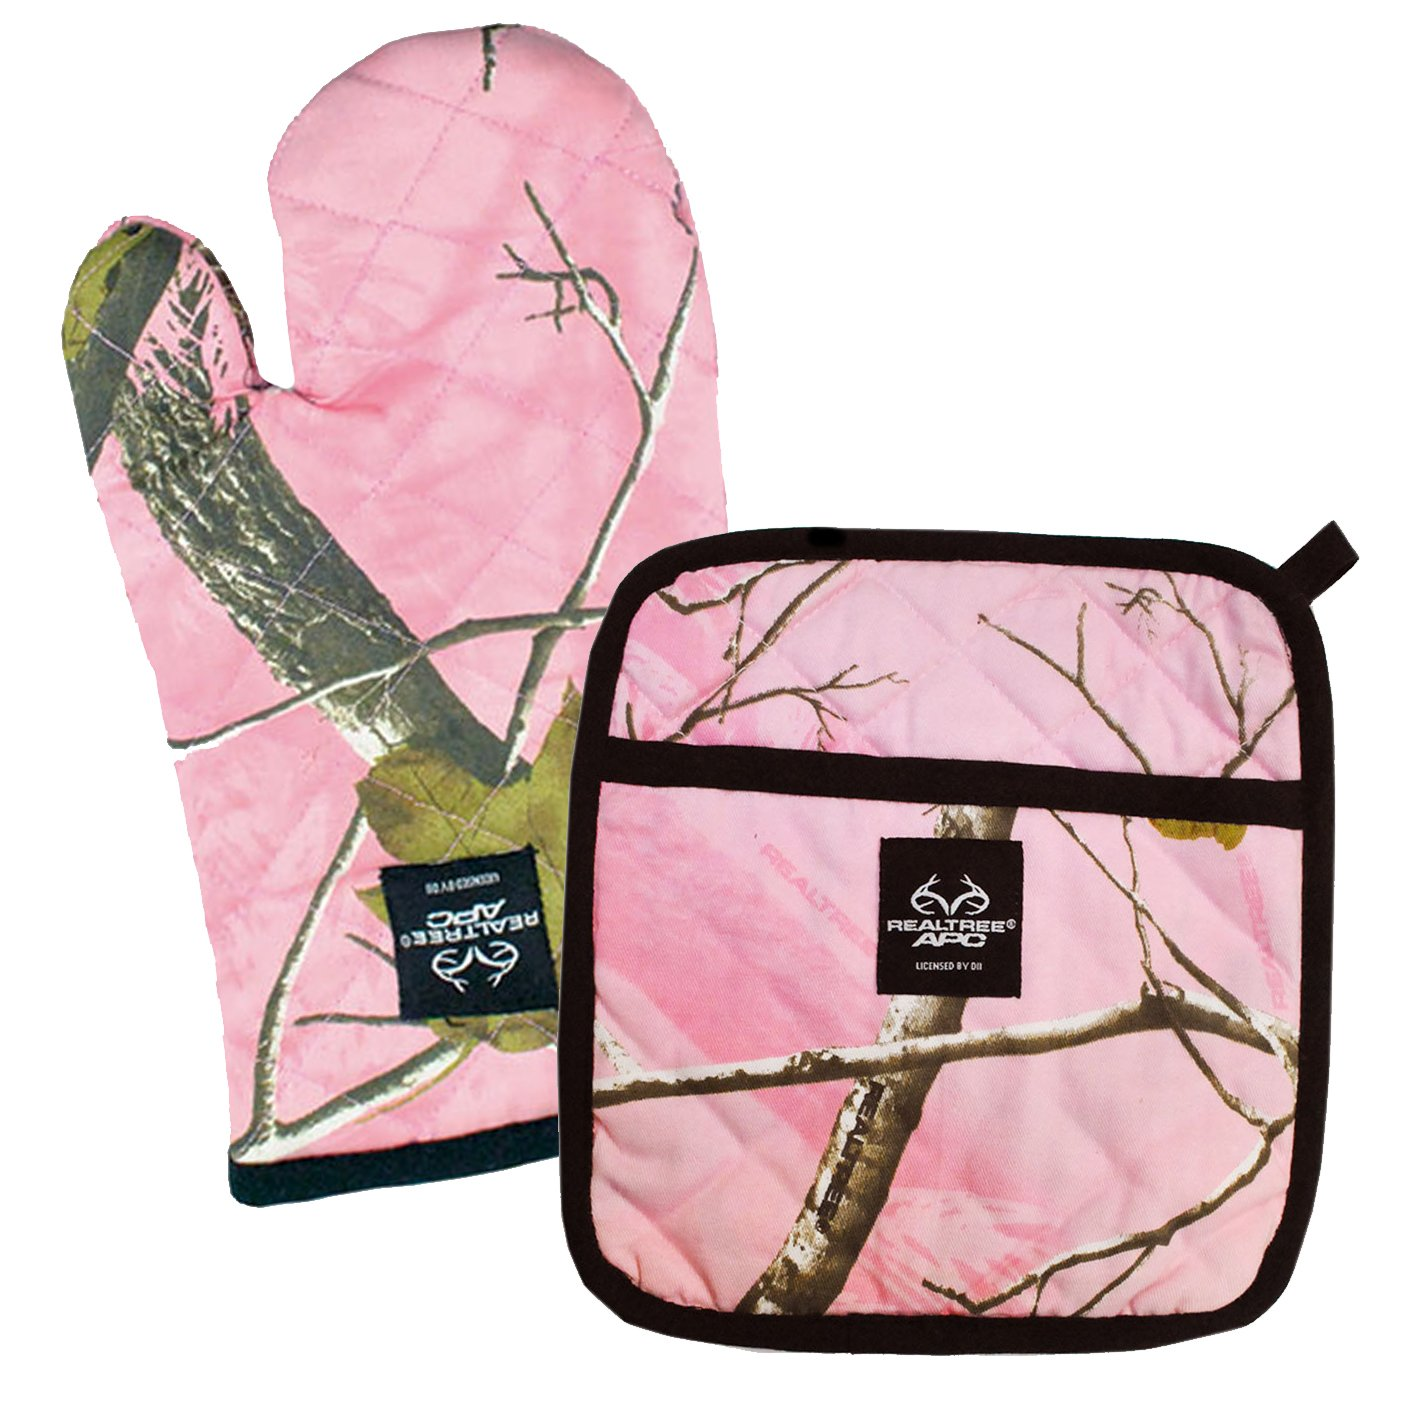 DII 100% Cotton, Machine Washable, Everyday Kitchen Basic, Realtree Printed Oven Mitt and Potholder Gift Set, Pink by DII